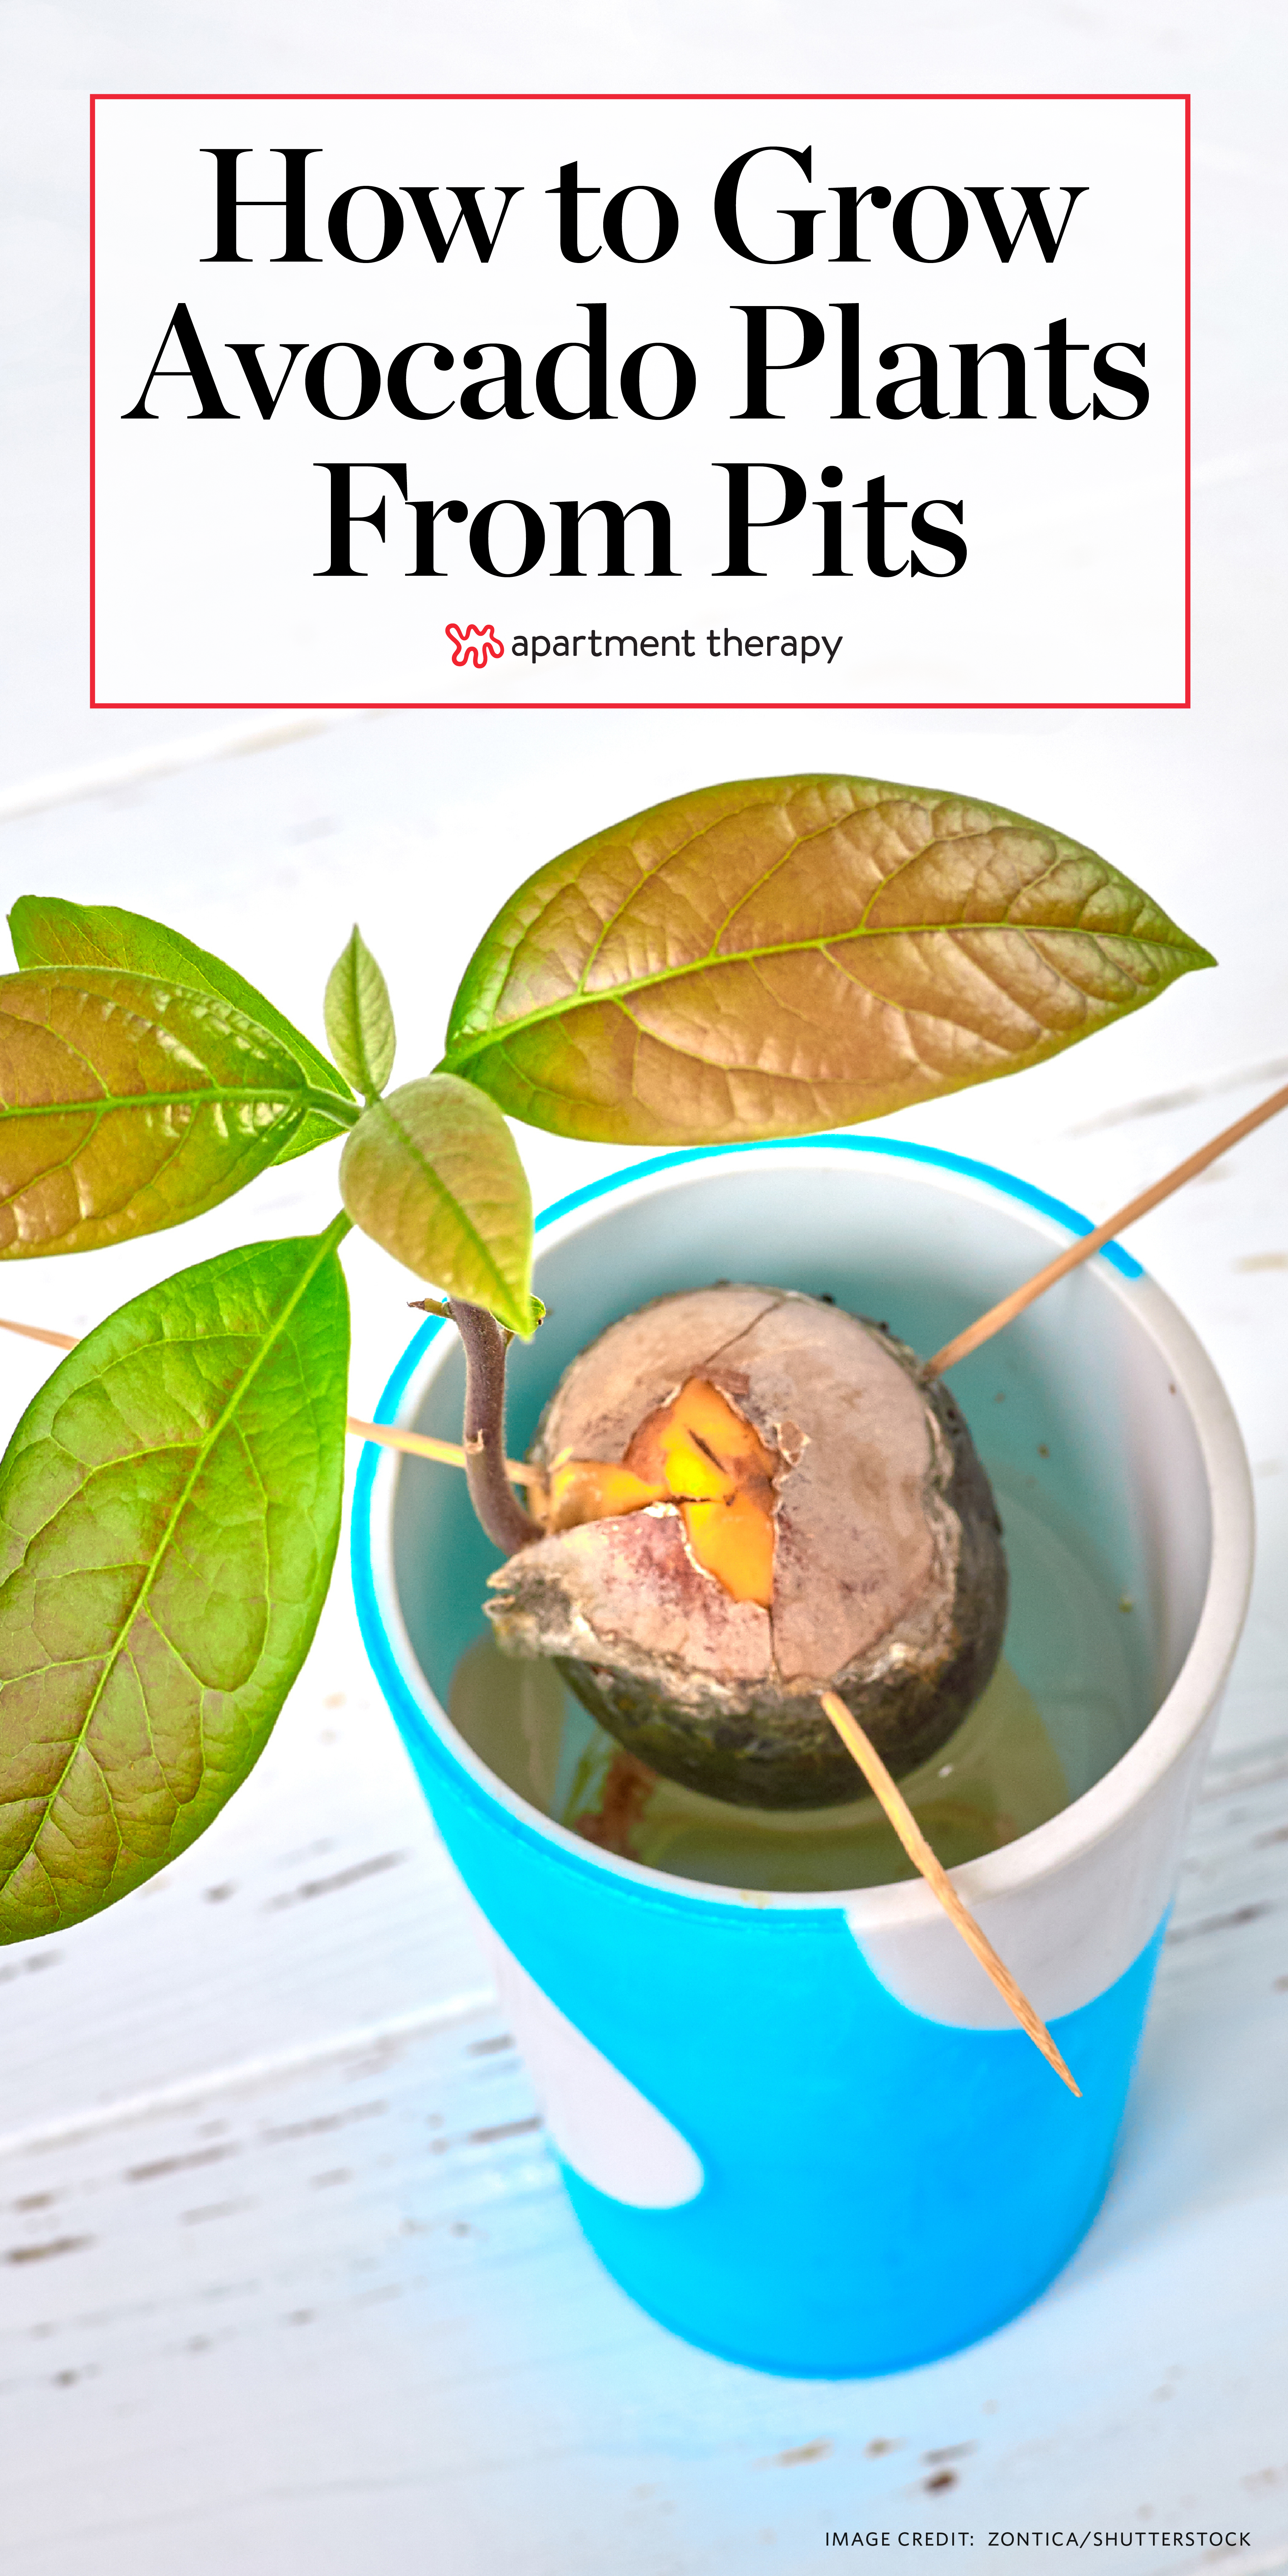 How To Grow Avocado Plants From Pits Apartment Therapy